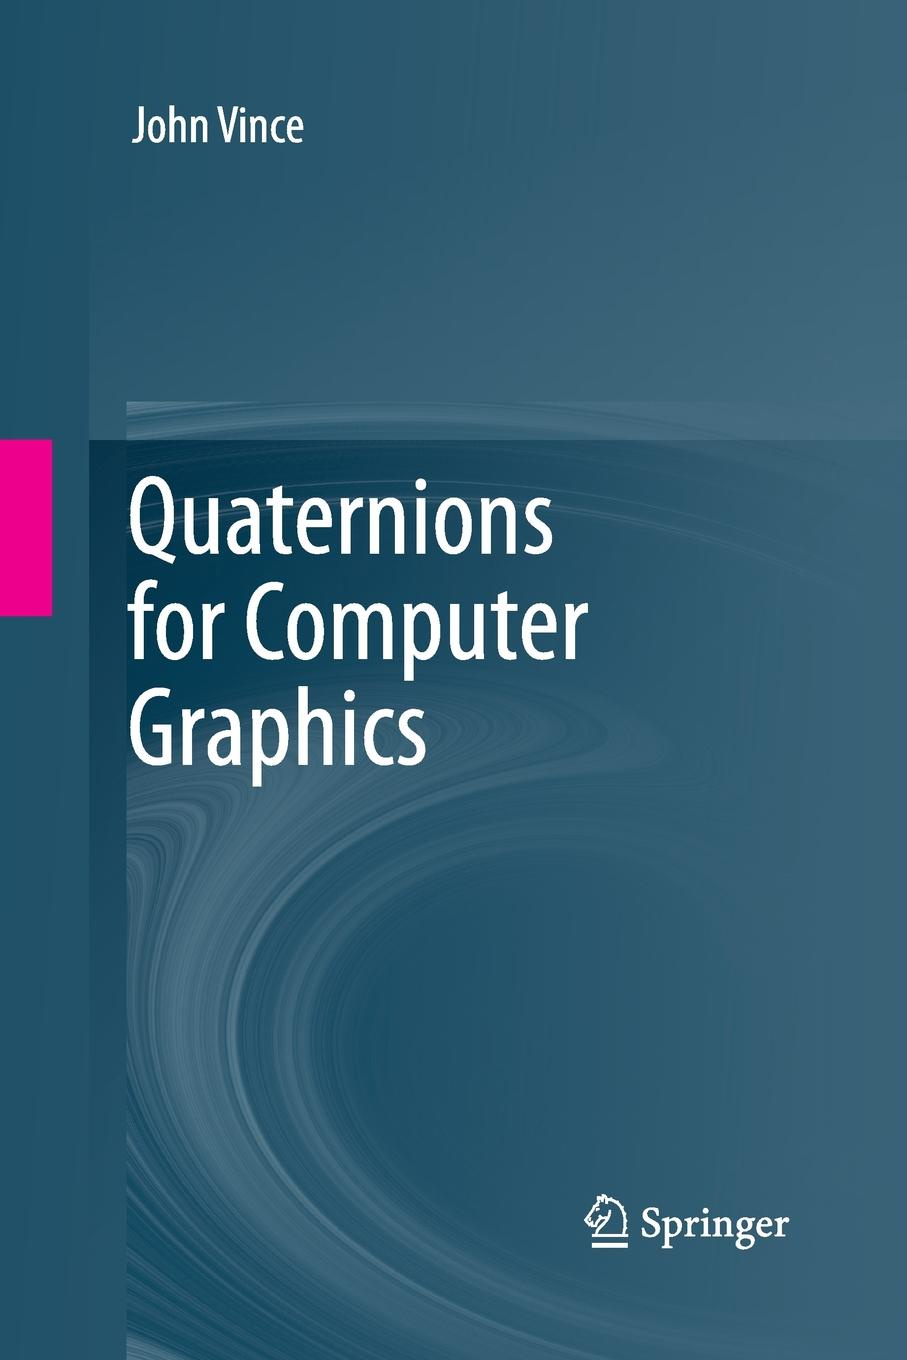 цена на John Vince Quaternions for Computer Graphics